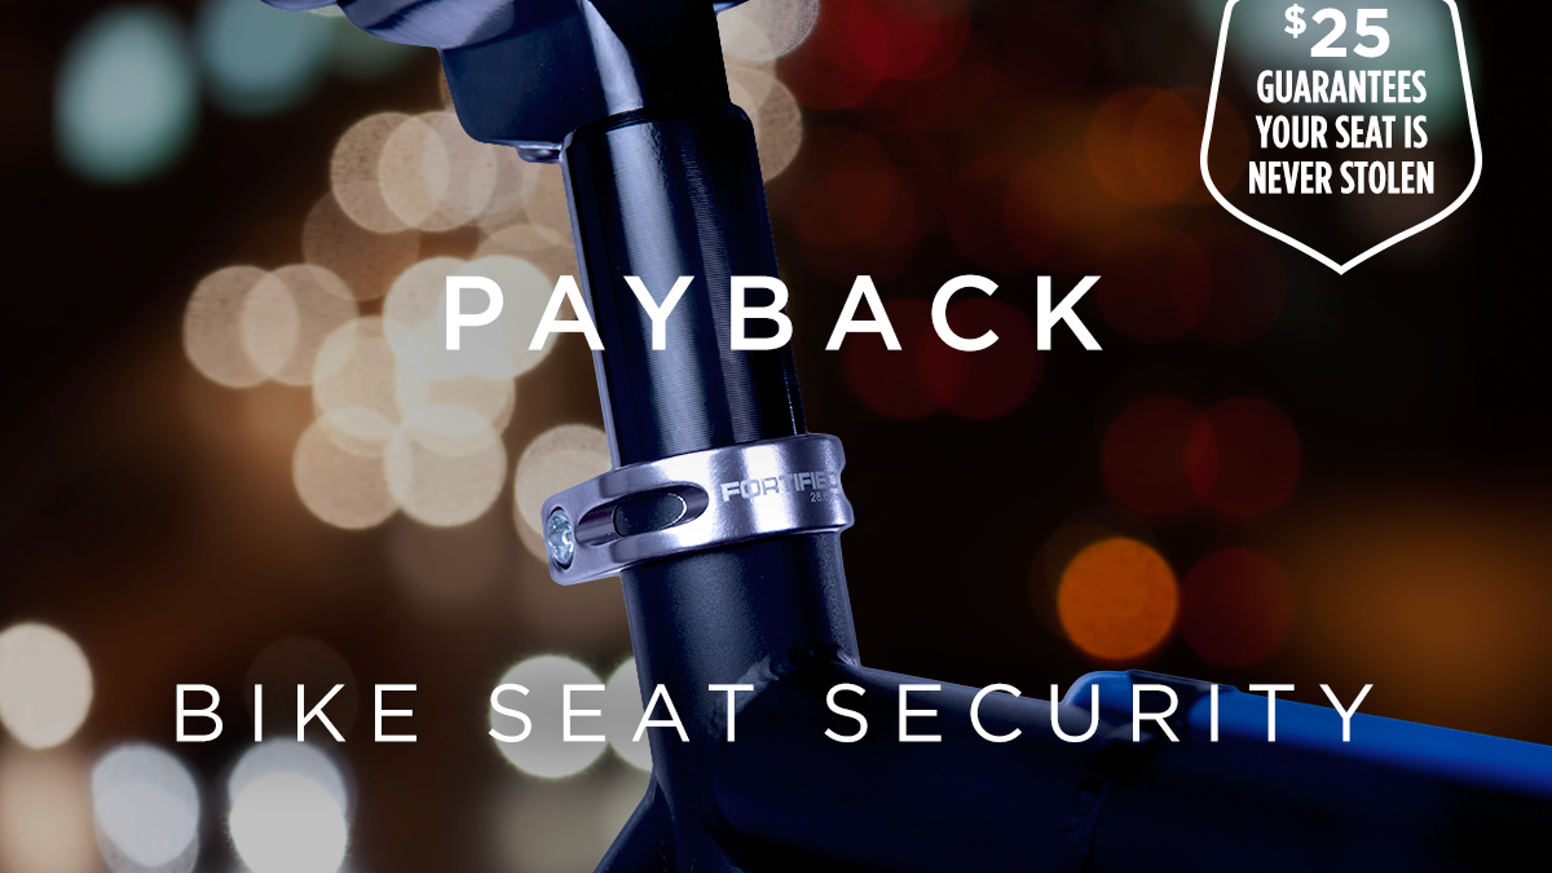 After our friend's bike seat was stolen, we created Payback: a bike seat security system with a Lifetime Anti-Theft Guarantee. ***NOW SHIPPING***